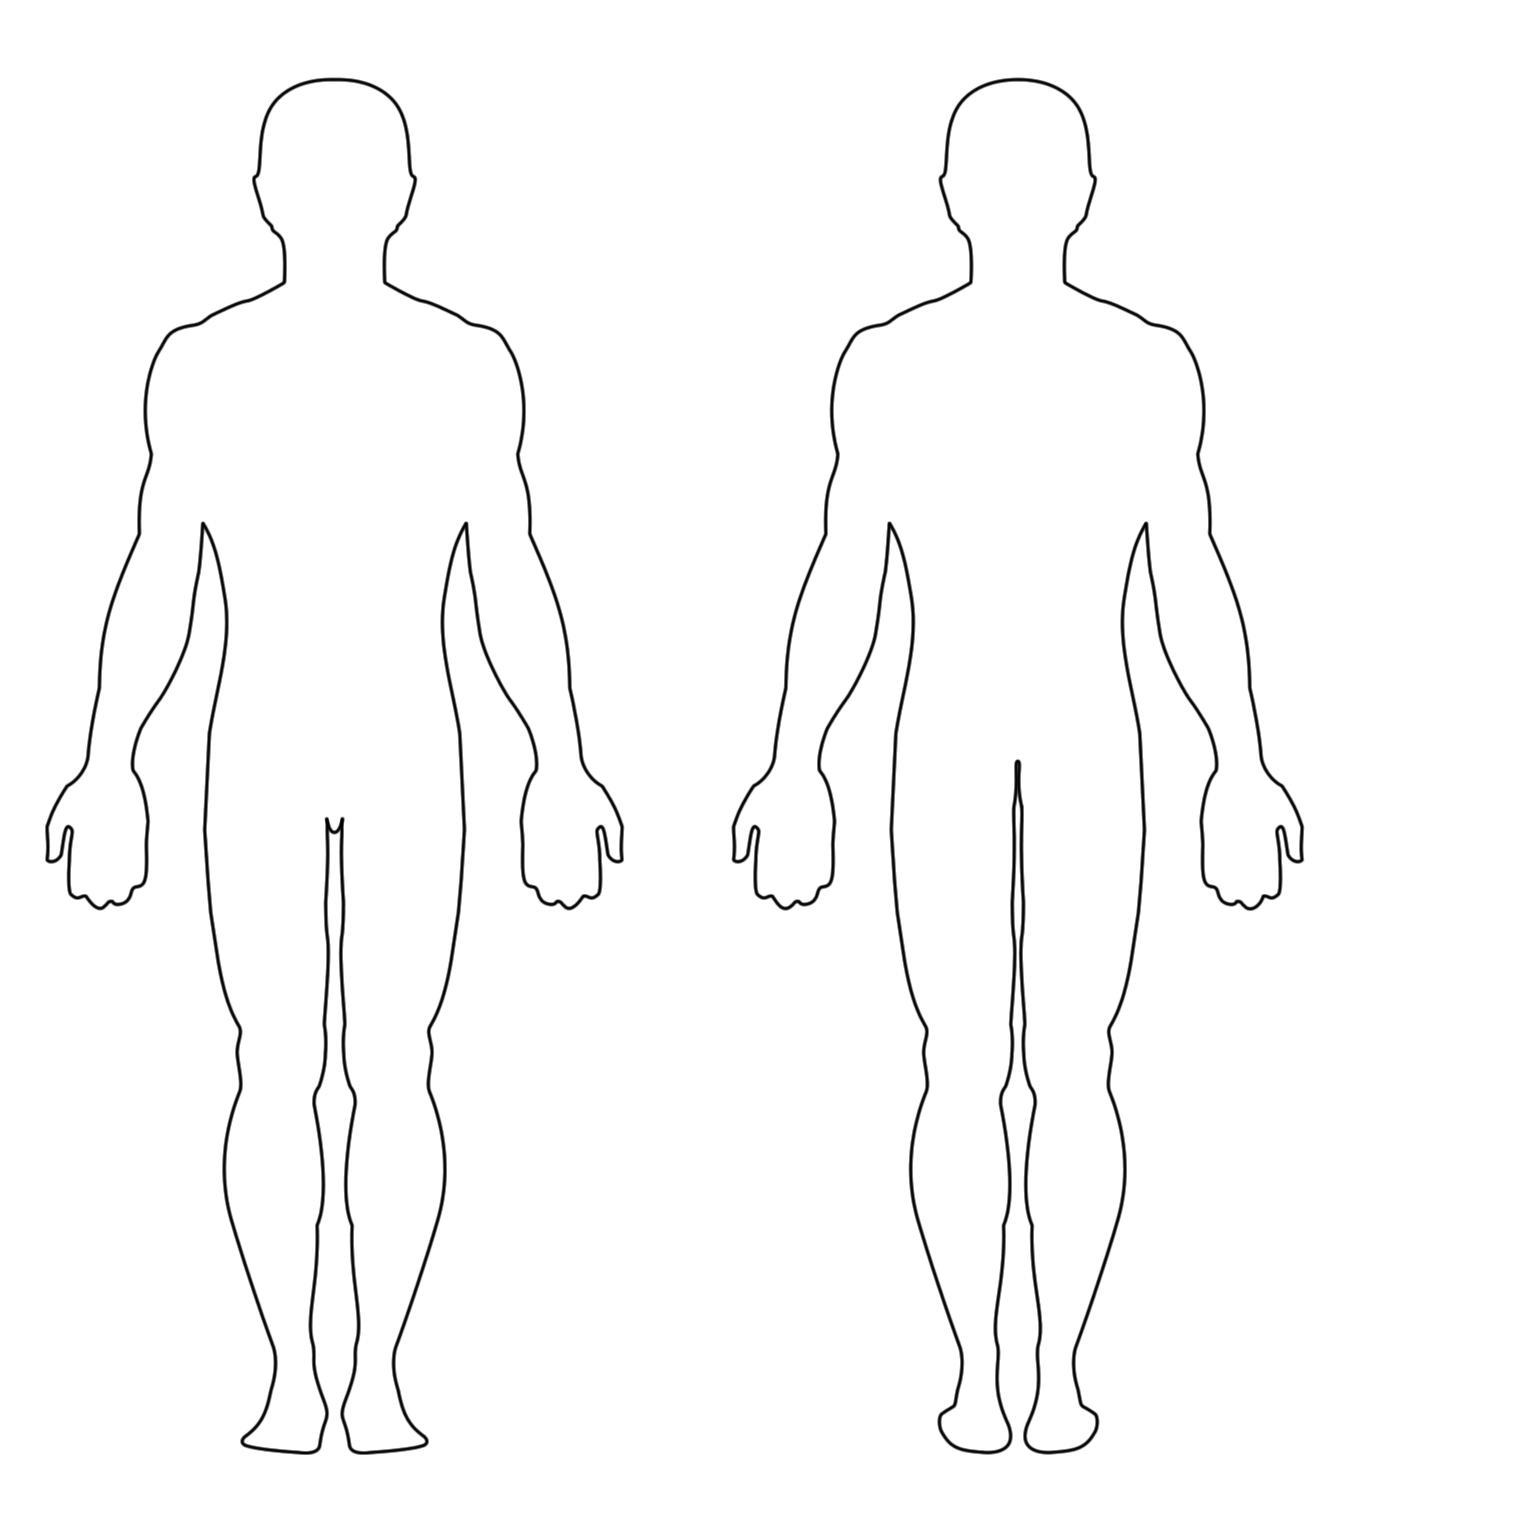 Free Human Body Silhouette Download Free Clip Art Free Clip Art On Clipart Library